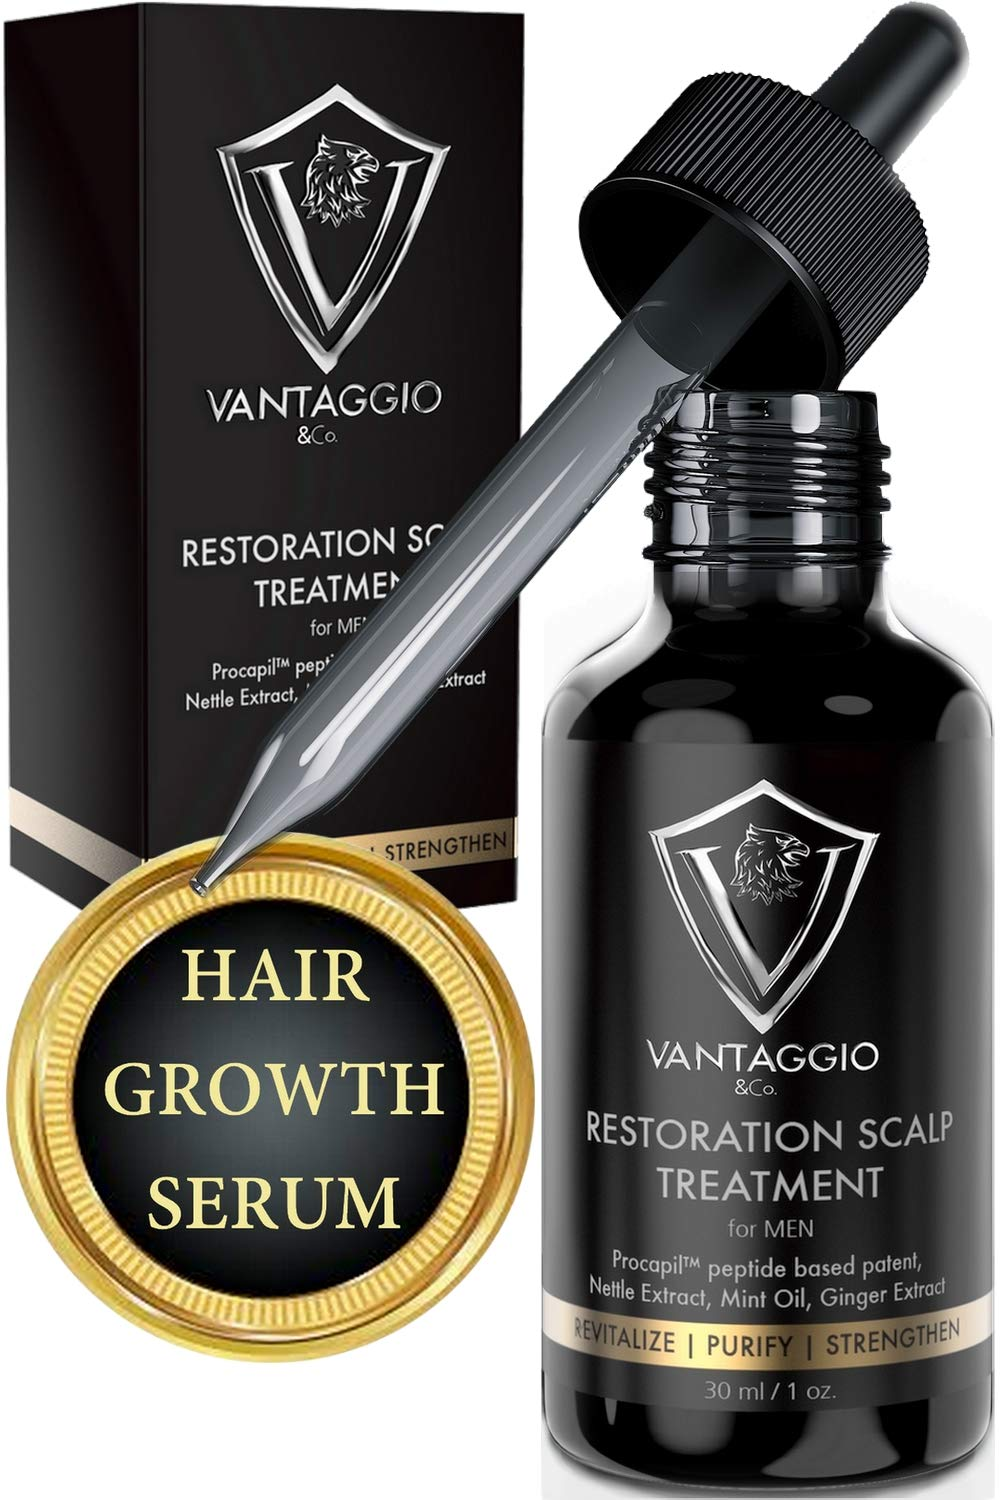 VANTAGGIO & Co. Restoration Scalp Treatment contains Aloe Vera, Nettle, Ginger, Rosemary, Ginseng and Peppermint - 1oz by VANTAGGIO & Co.